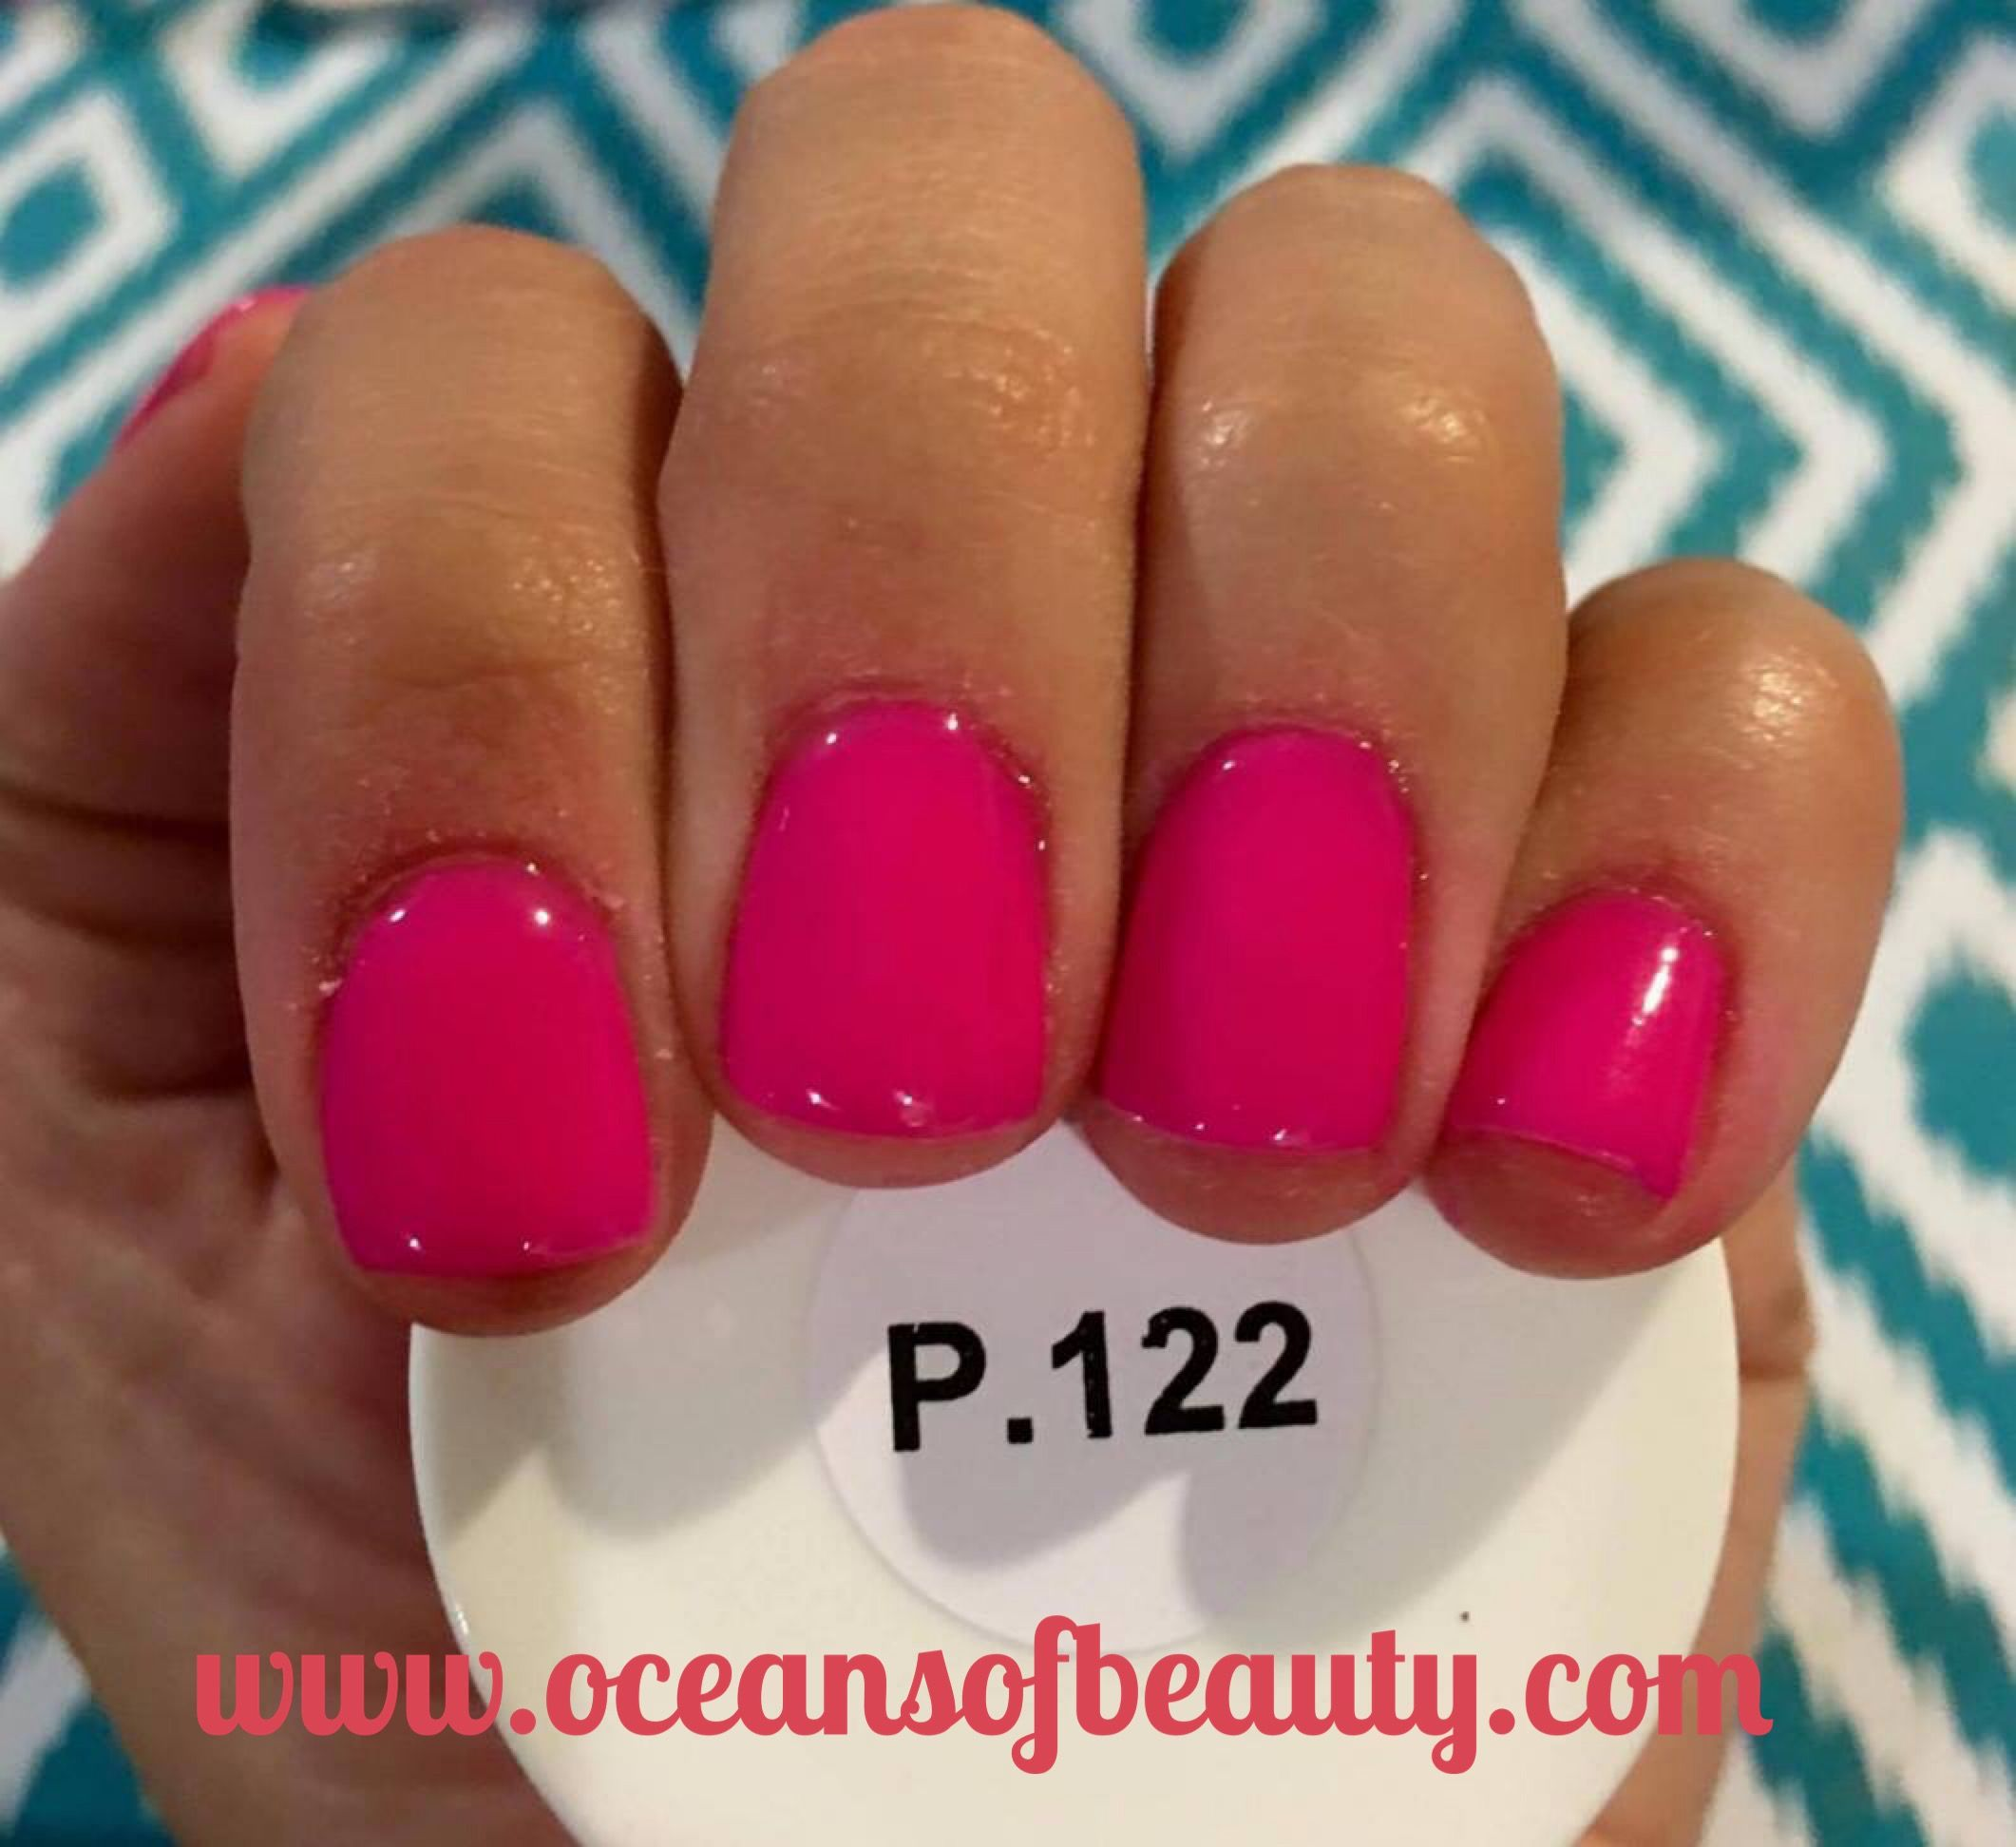 P.122 EZdip Gel Powder. DIY EZ Dip. No lamps needed, lasts 2-3 weeks ...